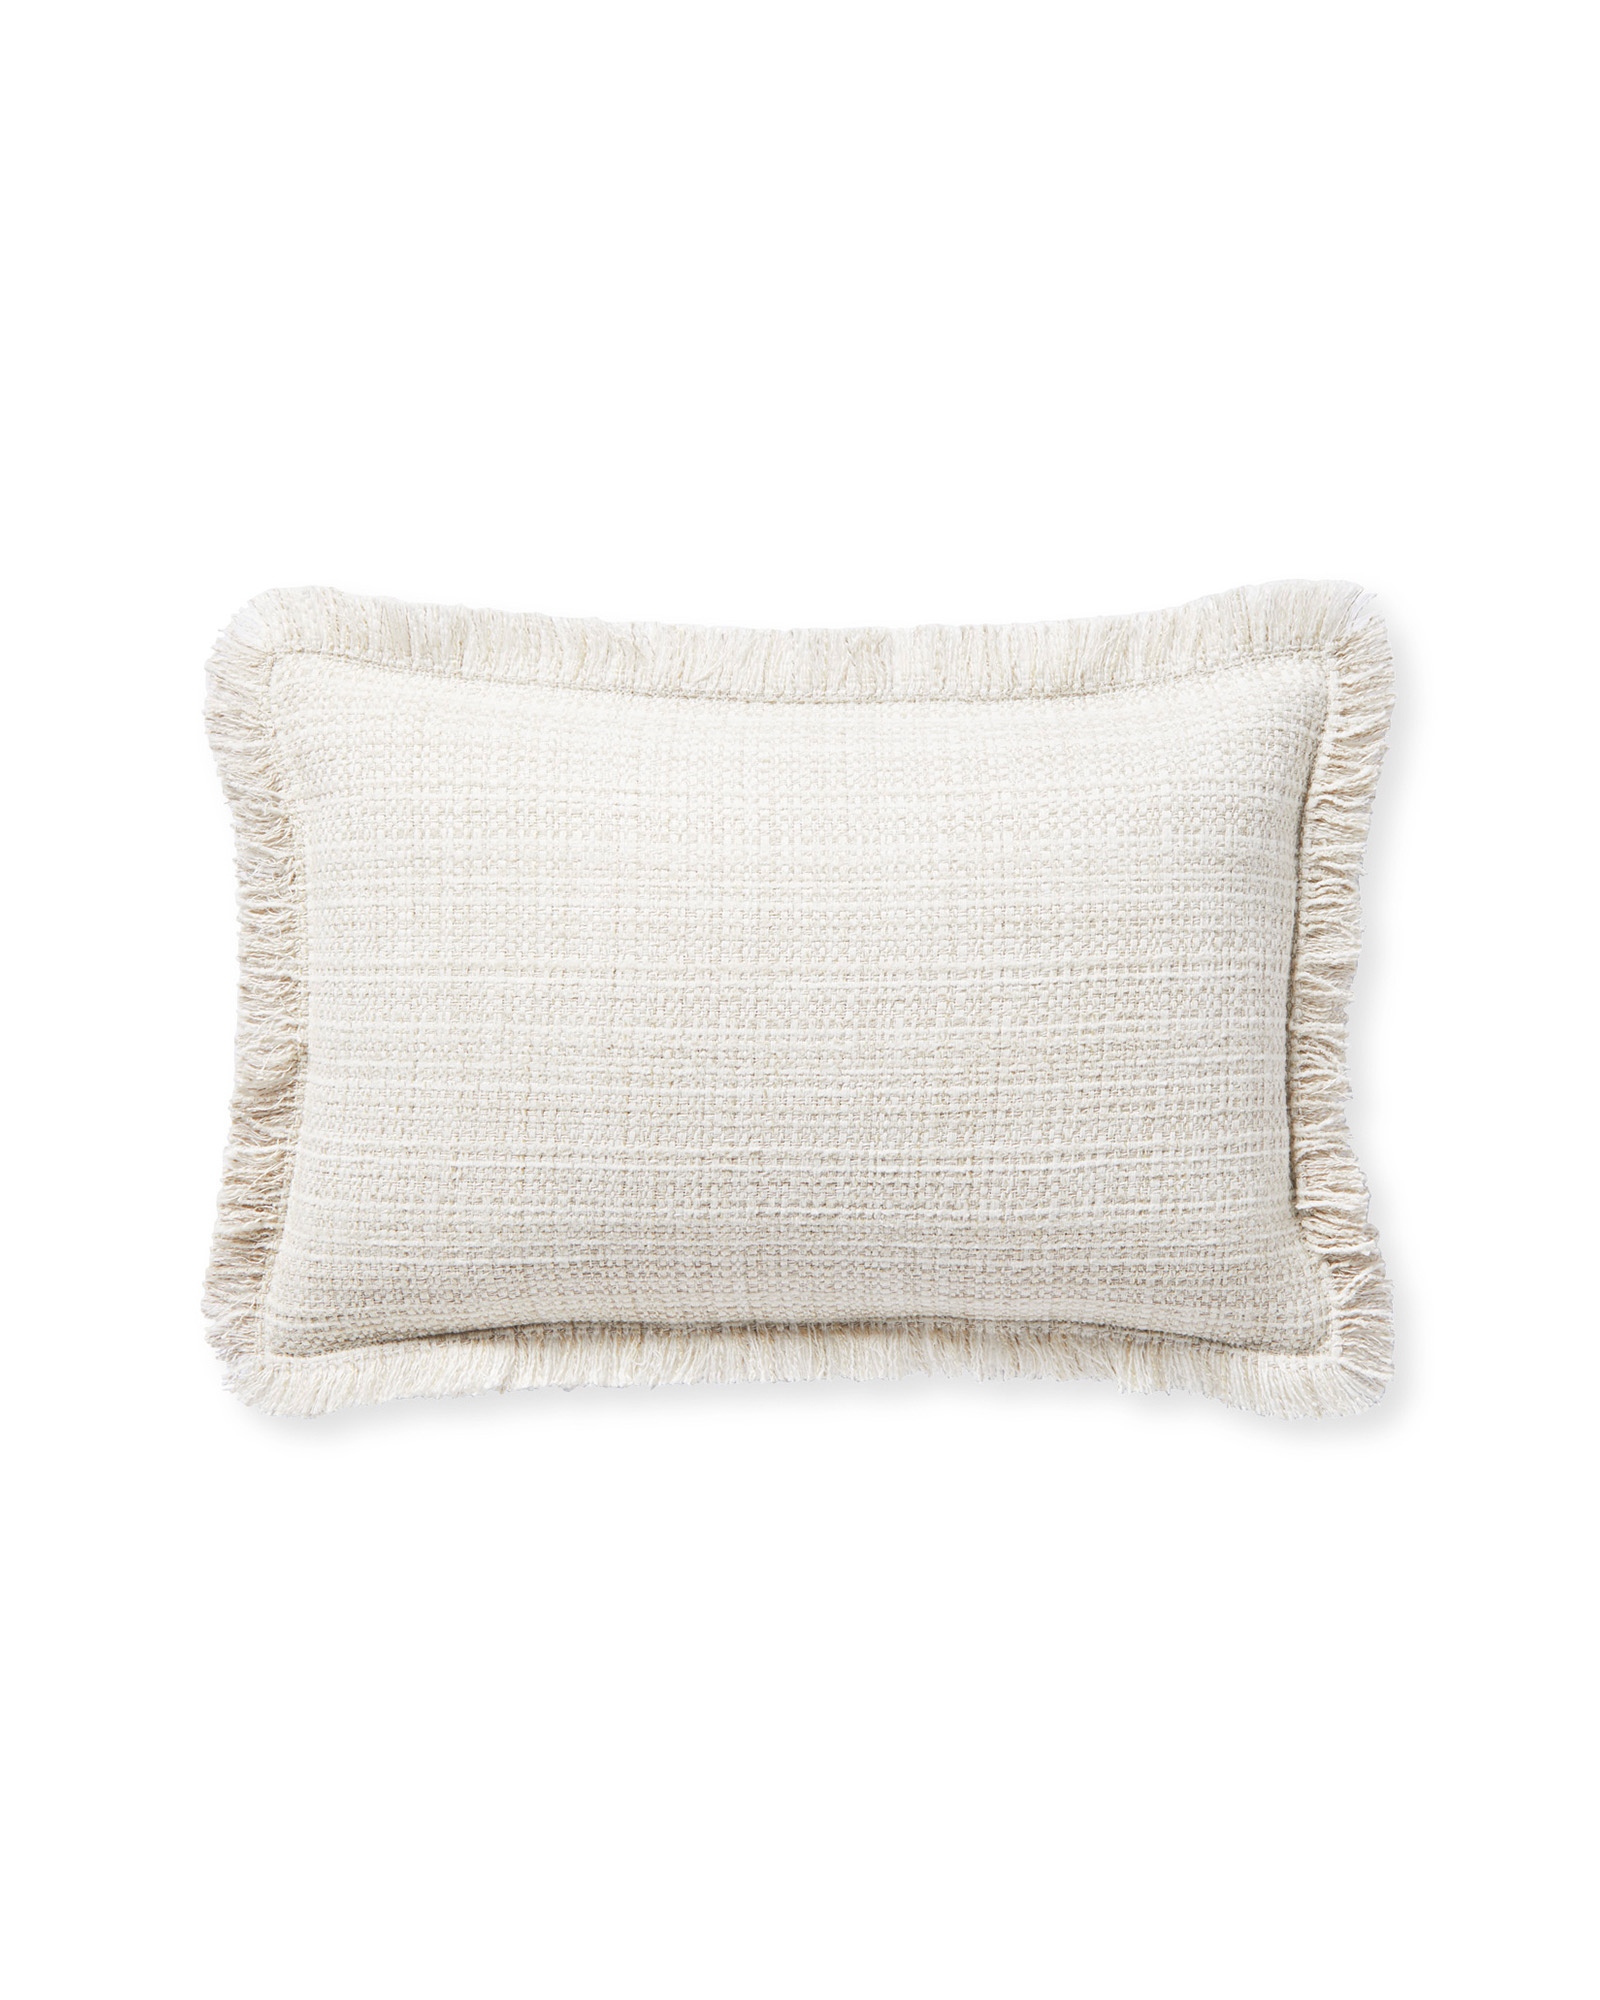 Perennials® Rosemount Pillow Cover, Chalk